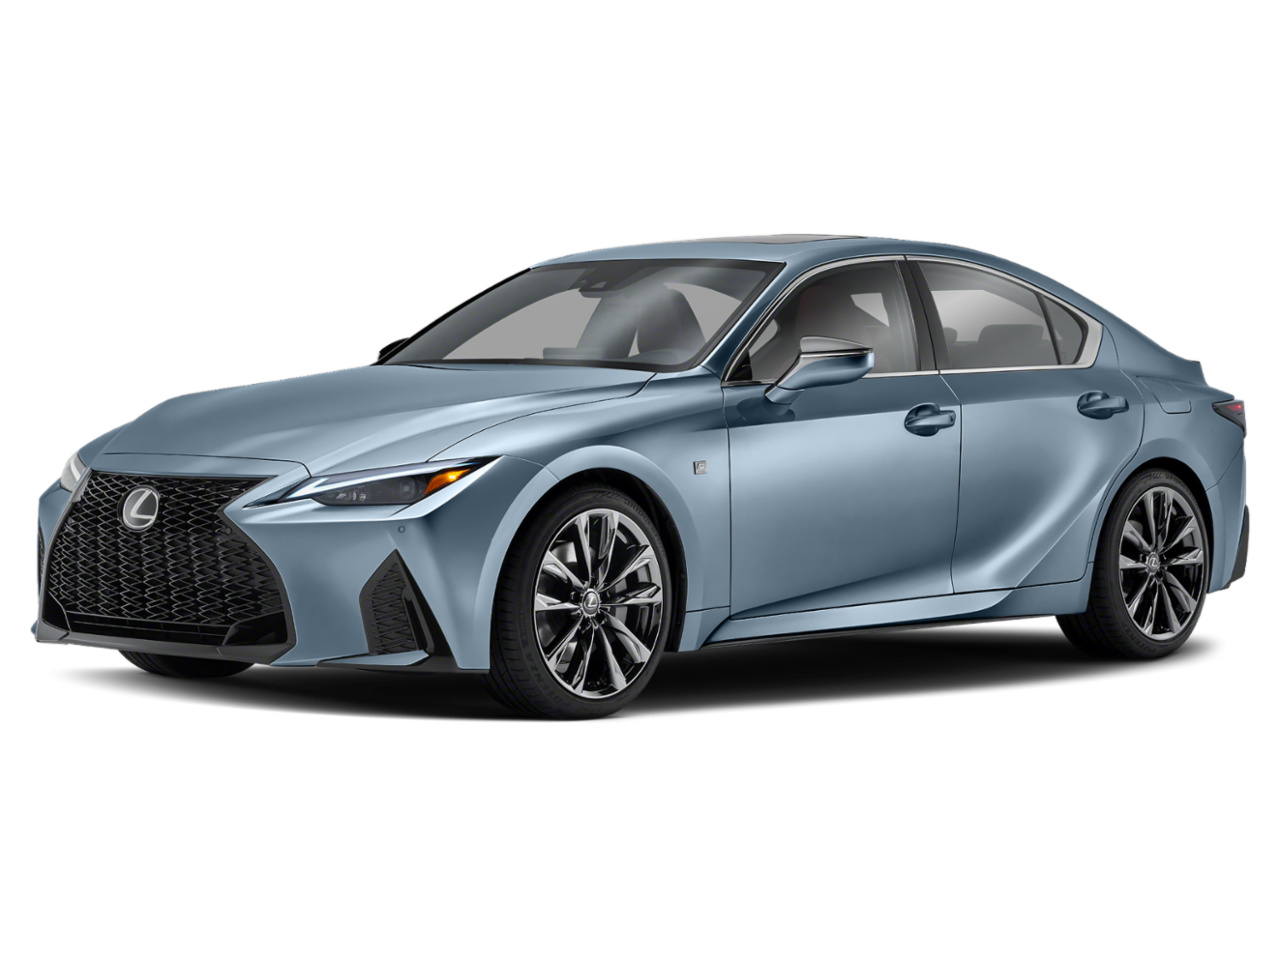 Lexus 2021 IS 350 F SPORT